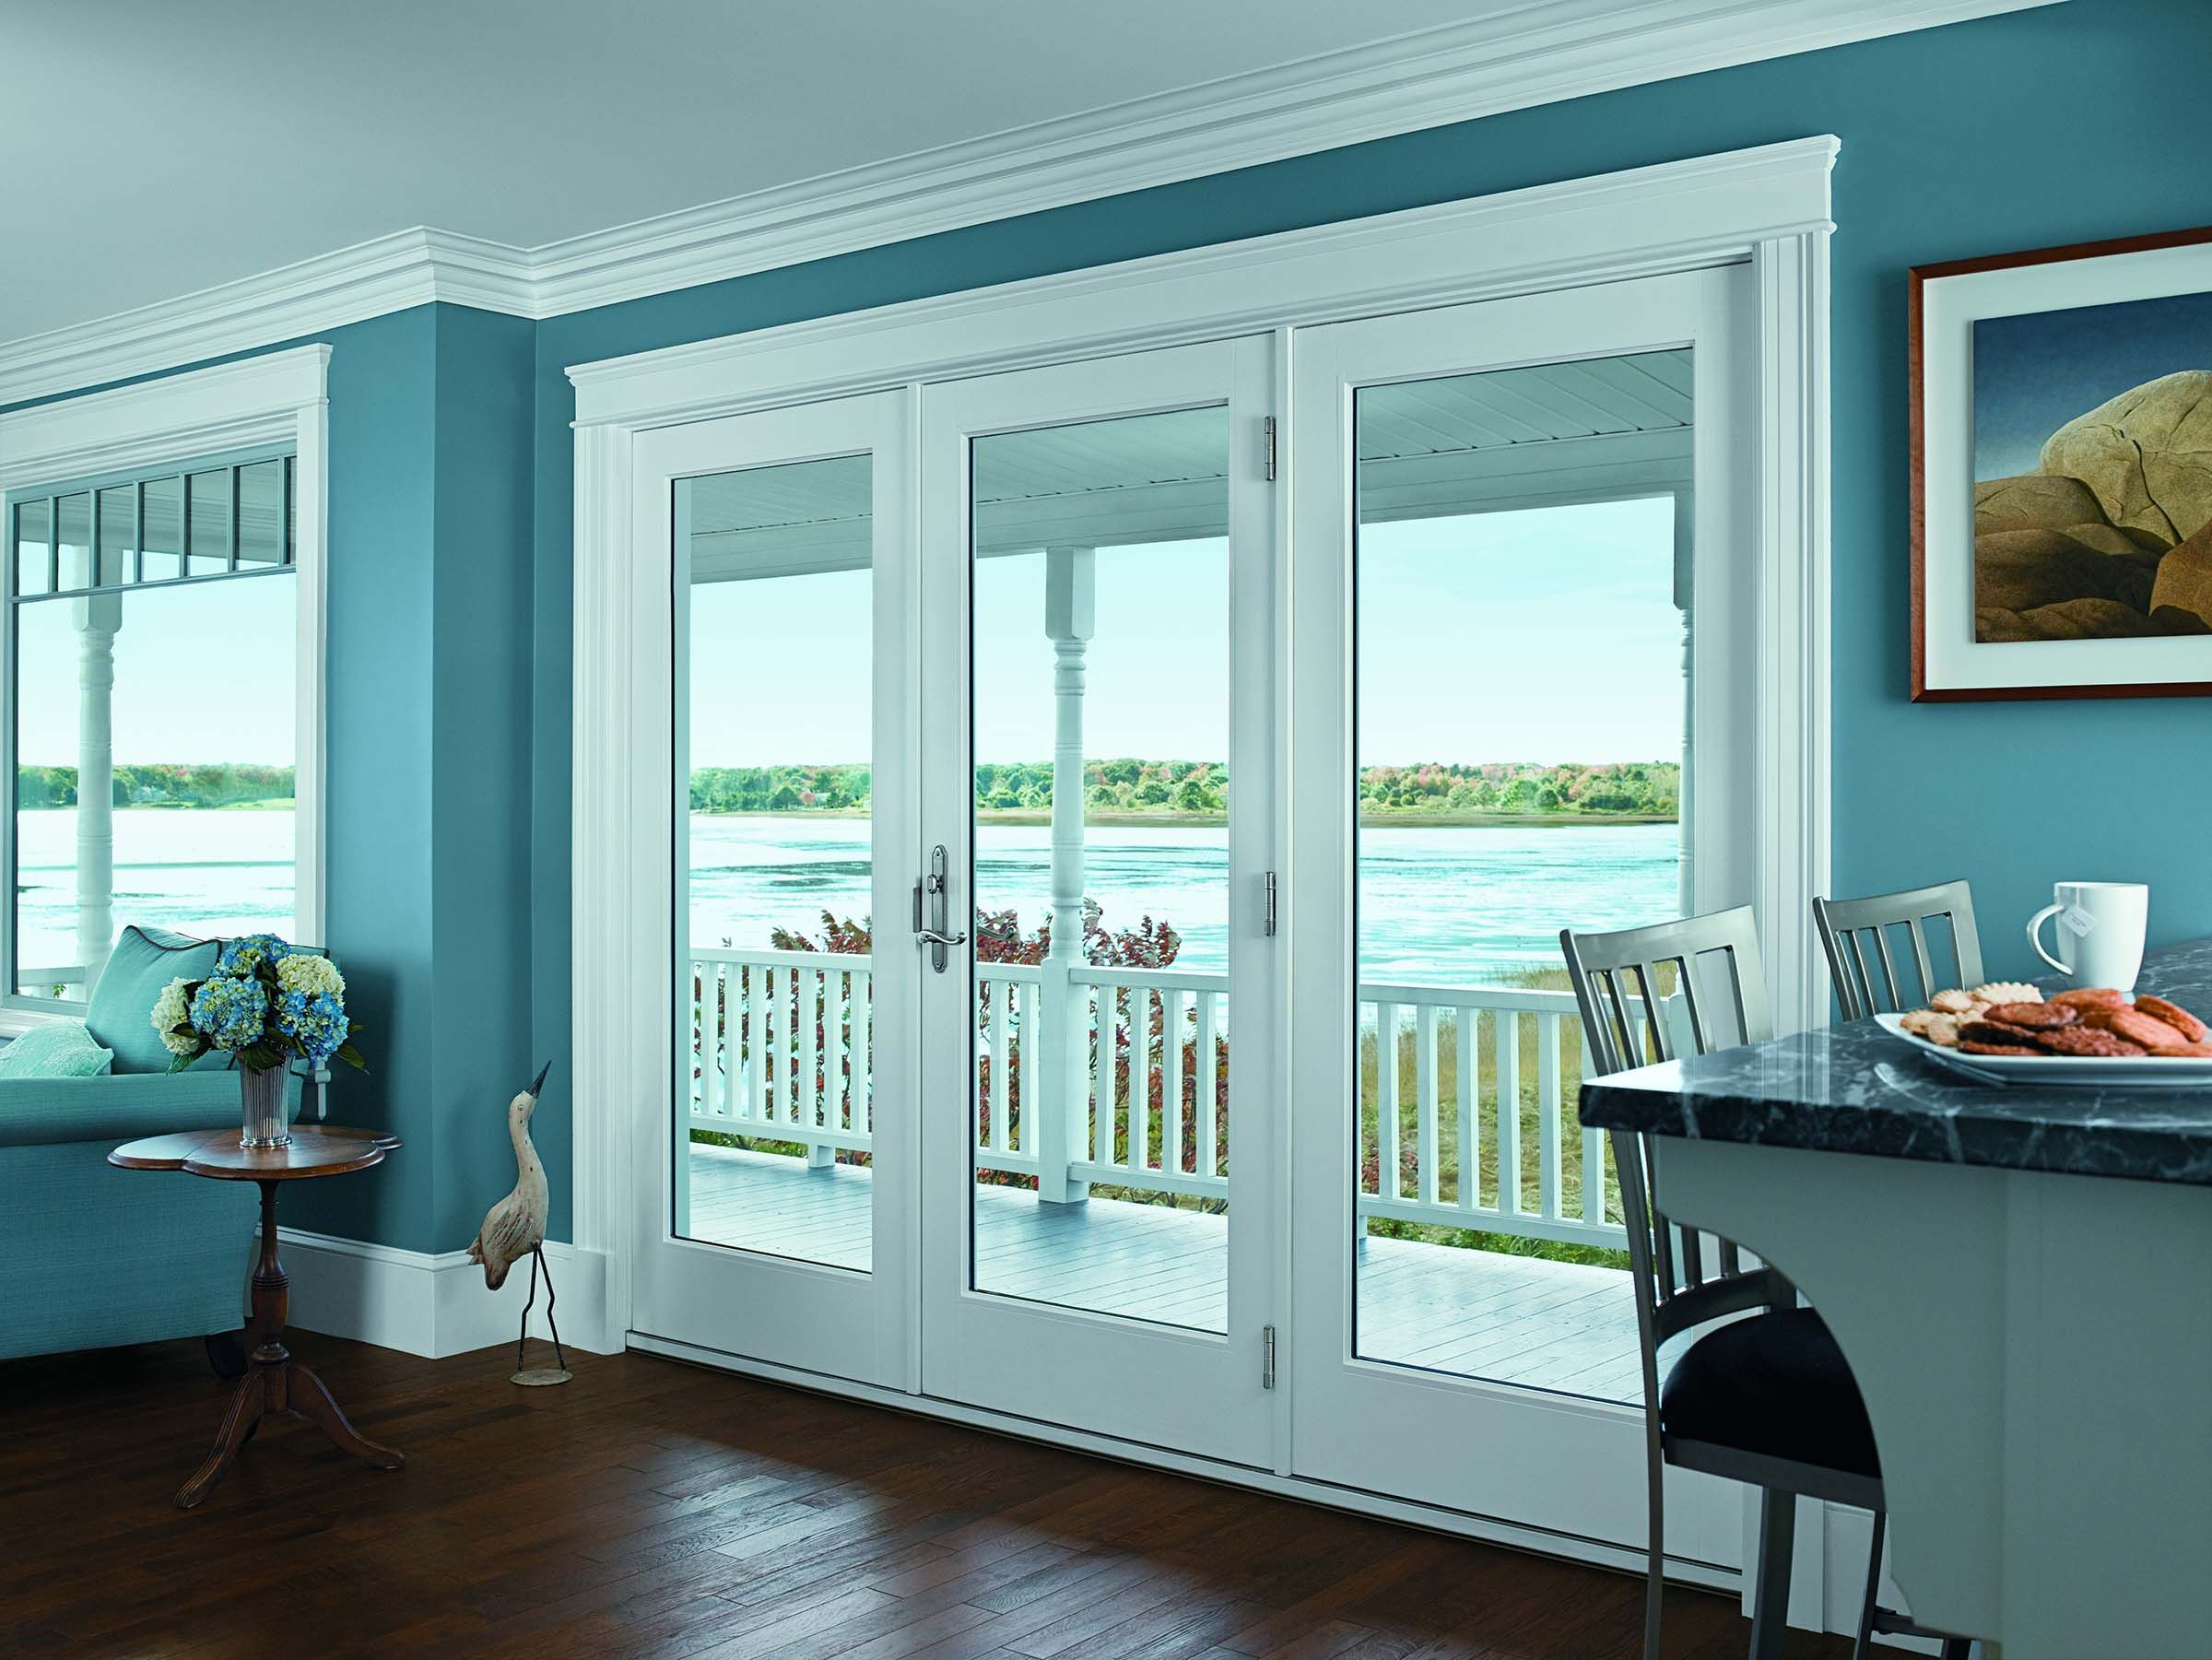 Windows And Door For Sun Room Hinged Patio Doors French Doors Exterior French Doors Interior